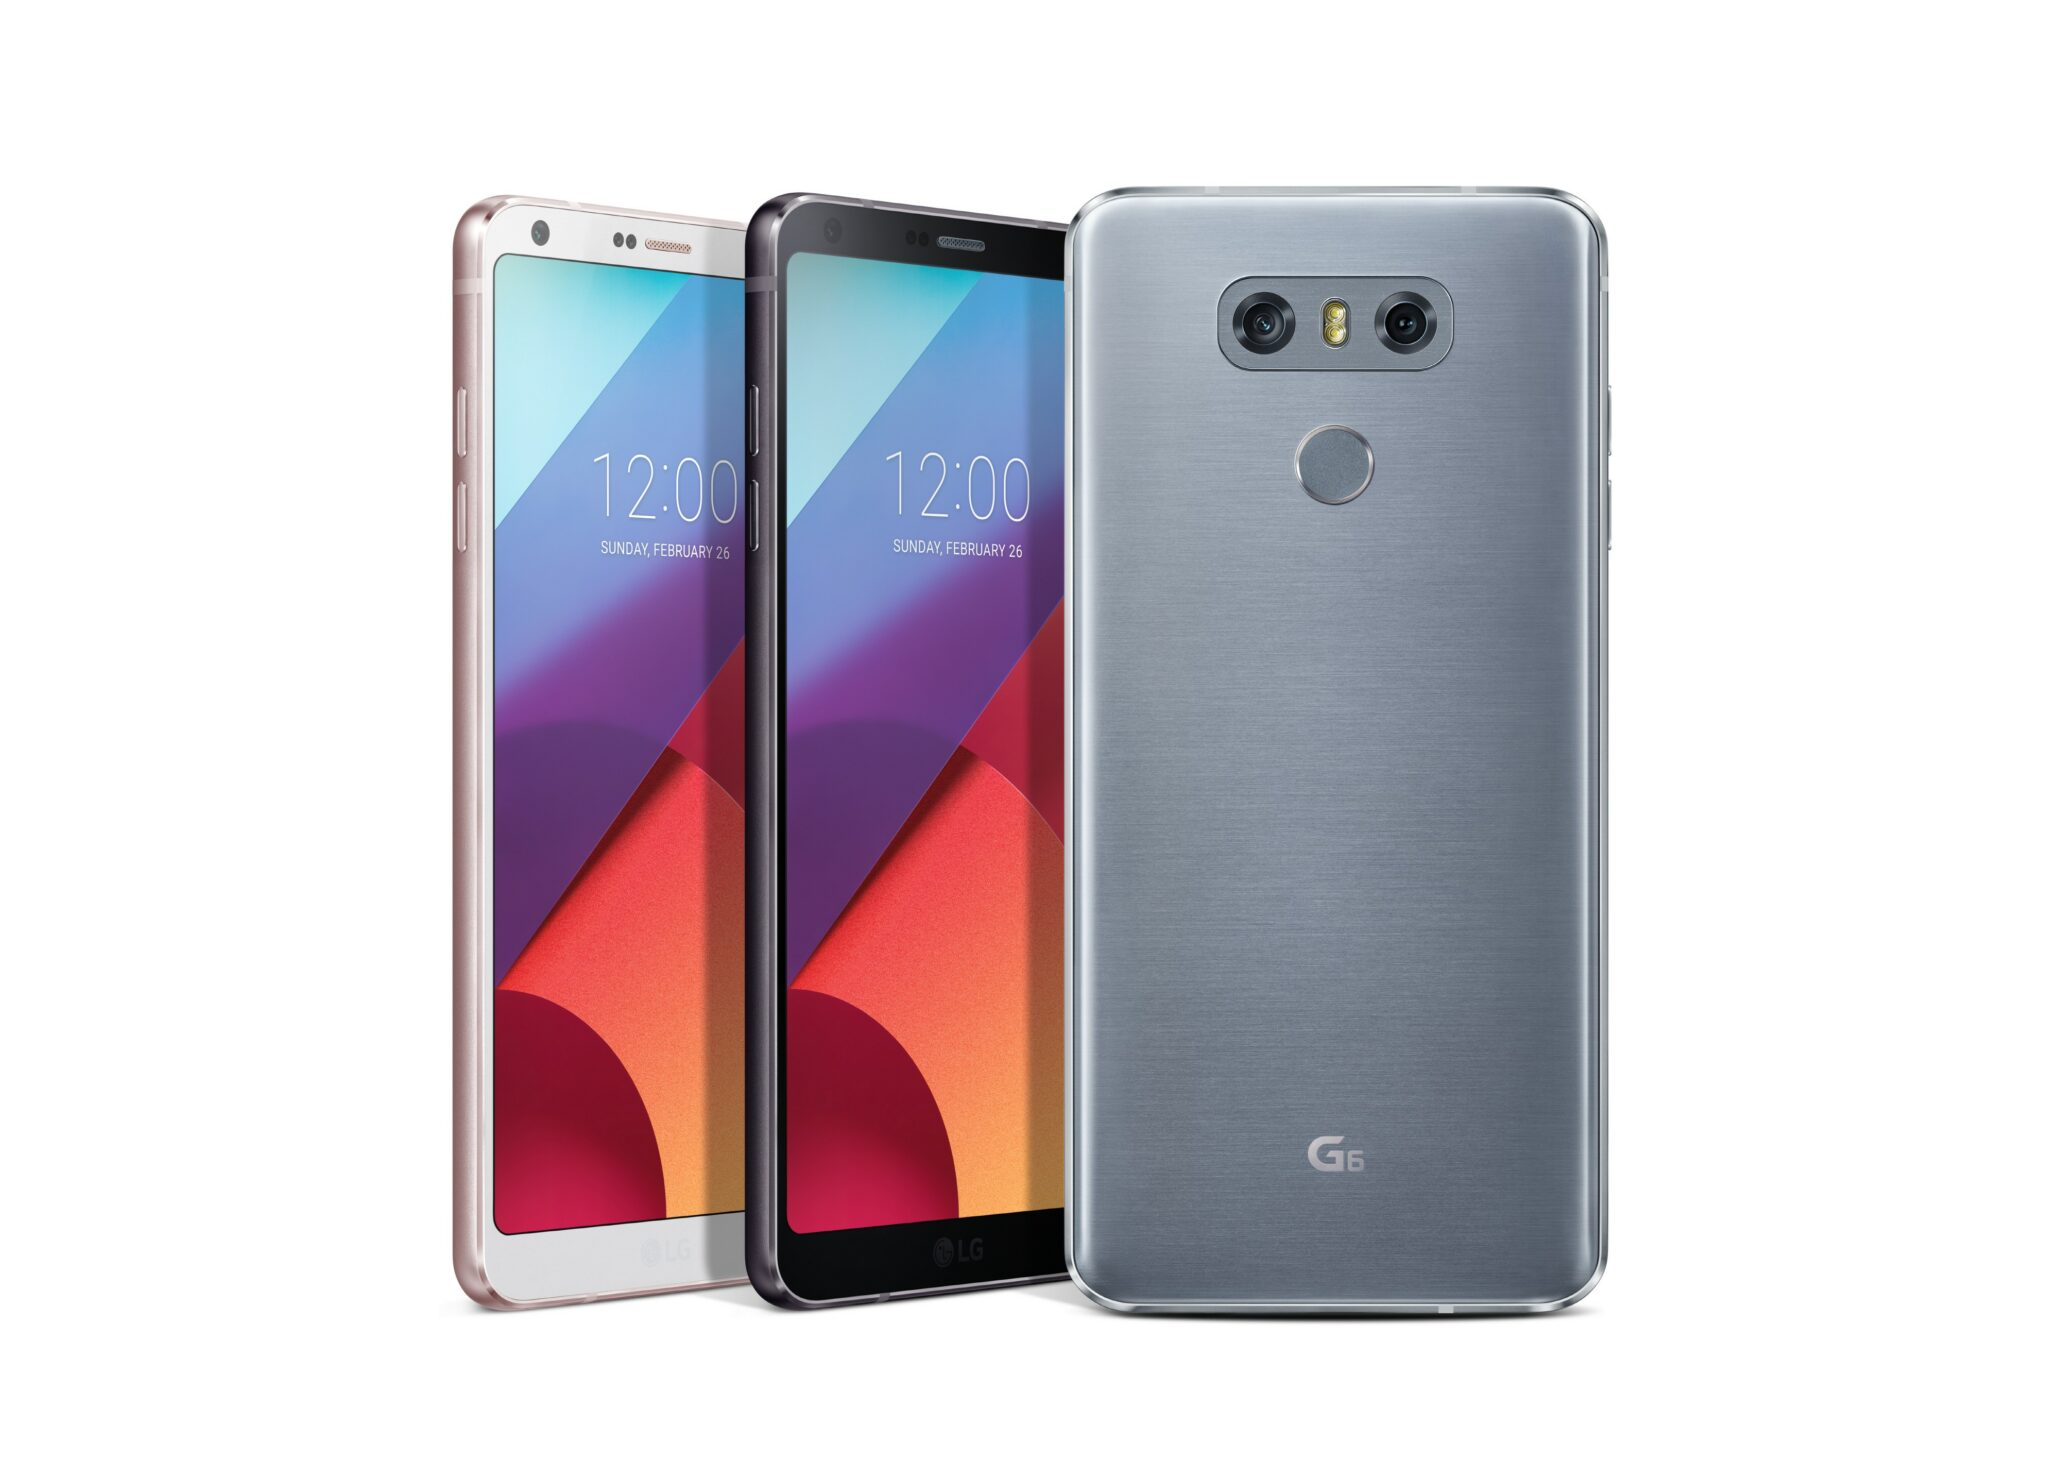 Android Pie Build Leaked for the European LG G6